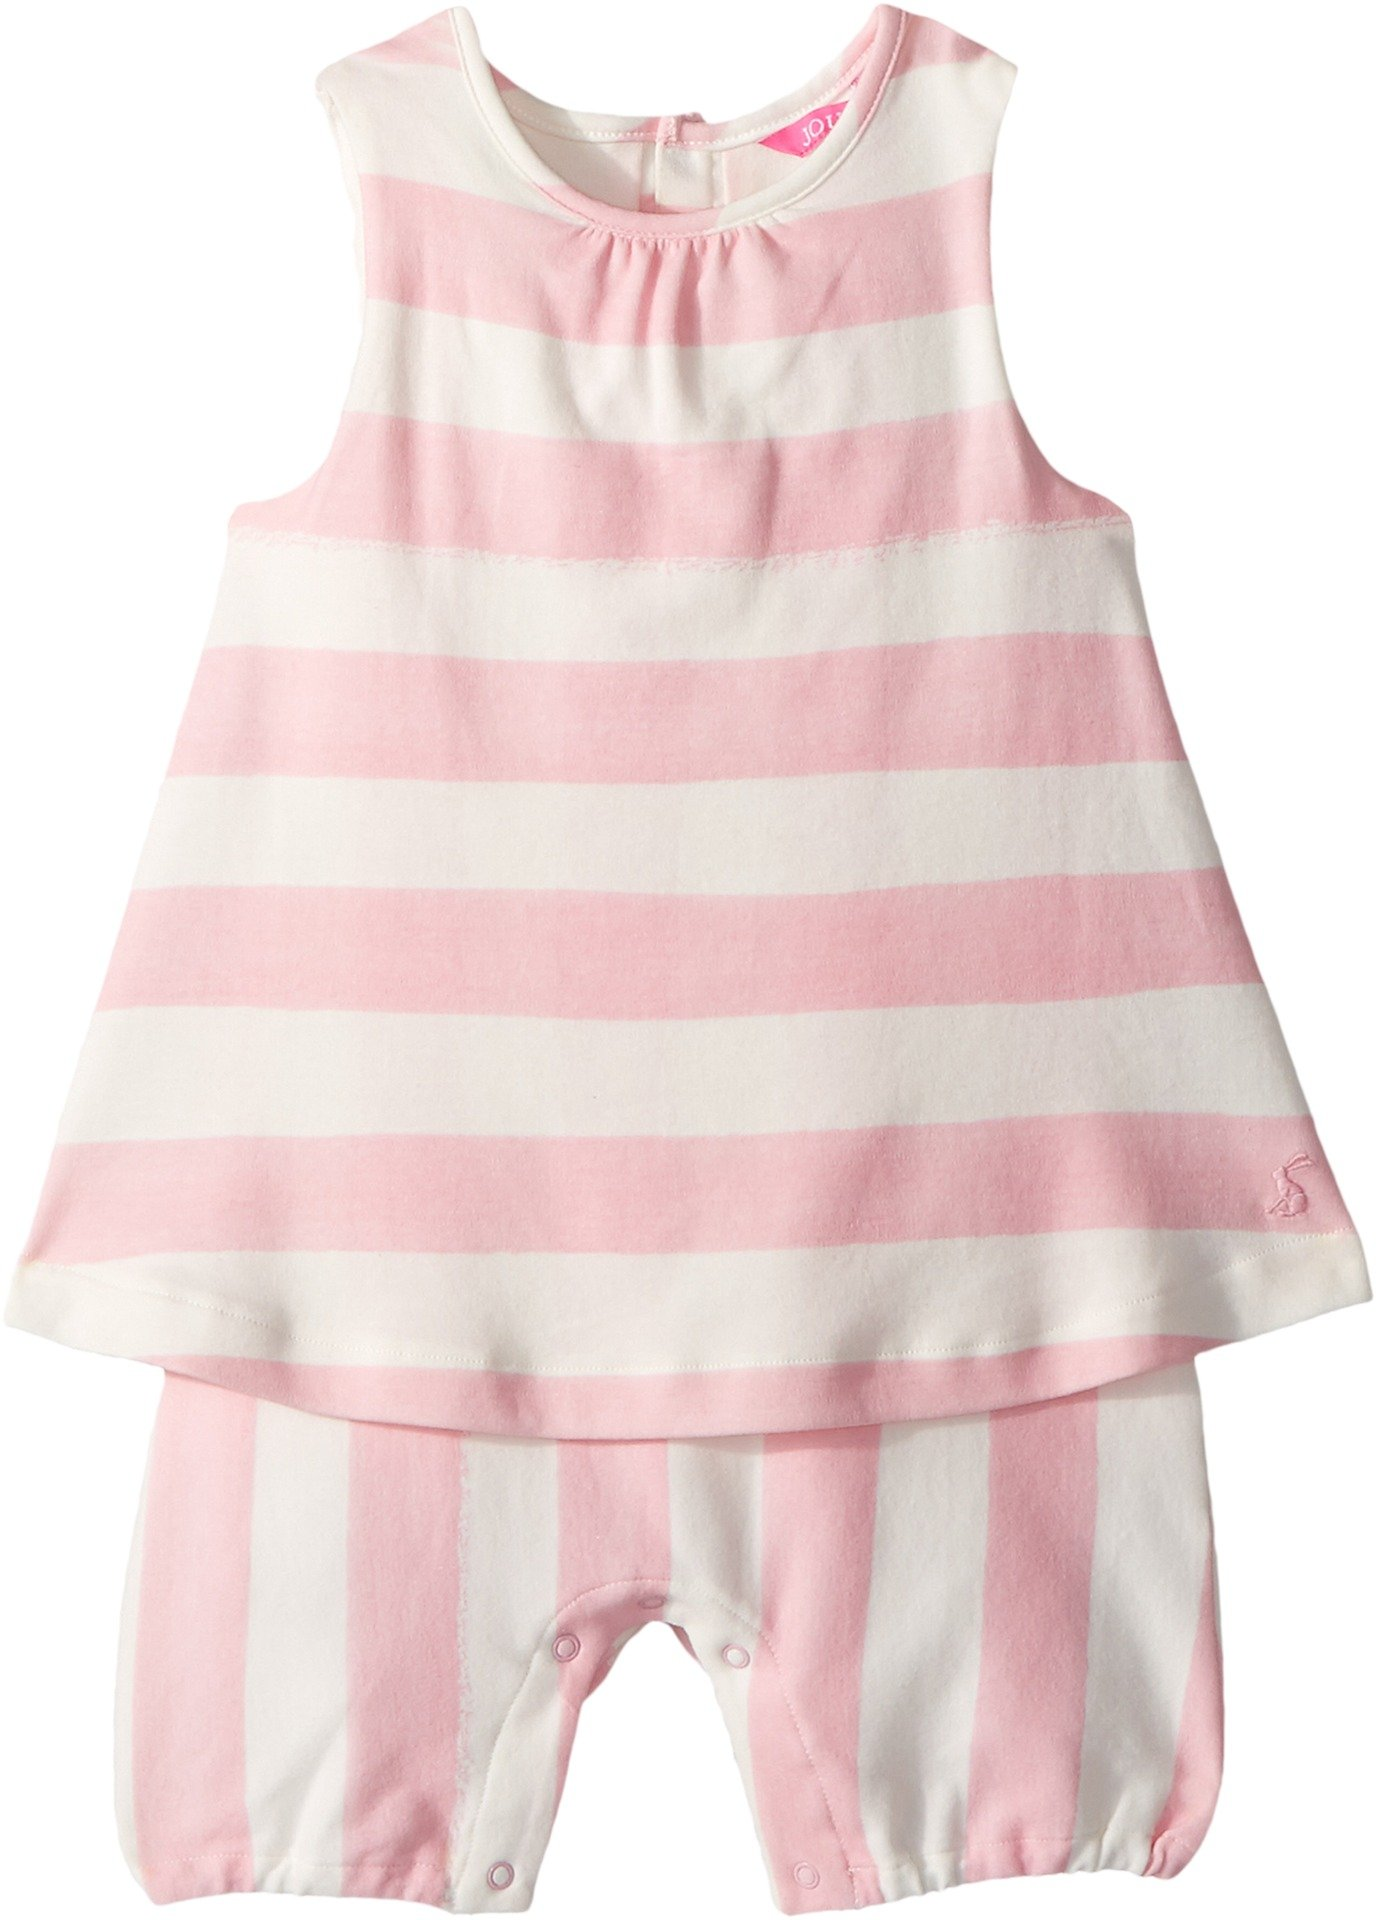 Joules Kids Baby Girl's Jersey Romper (Infant) Pink Stripe 6-9 Months